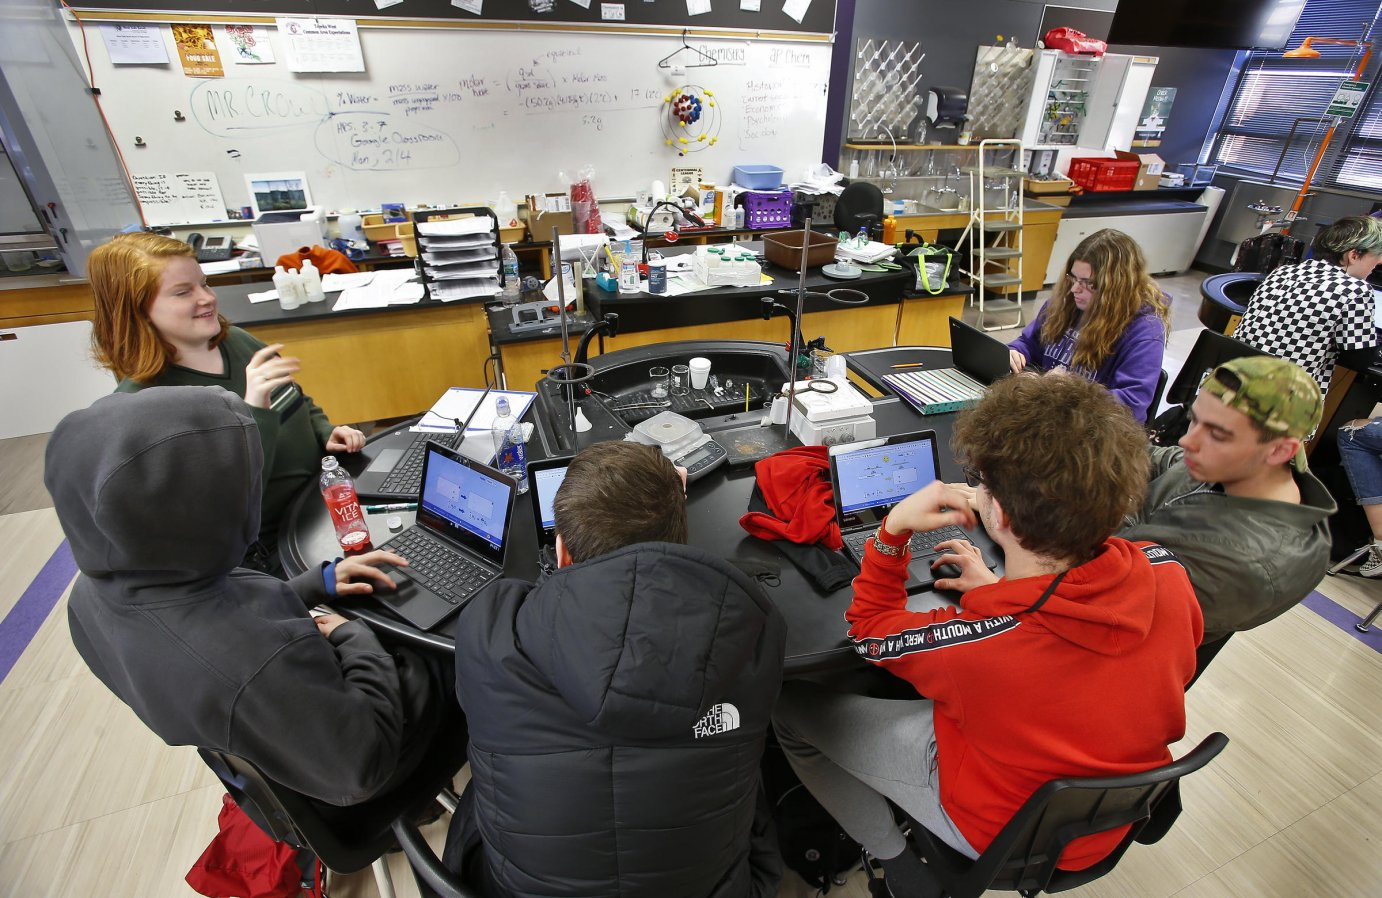 Districts in cities and rural areas have the most teacher vacancies. Filling positions in high demand subjects such as science, math and English can be particularly tough. (Photo by Chris Neal for the Kansas News Service)